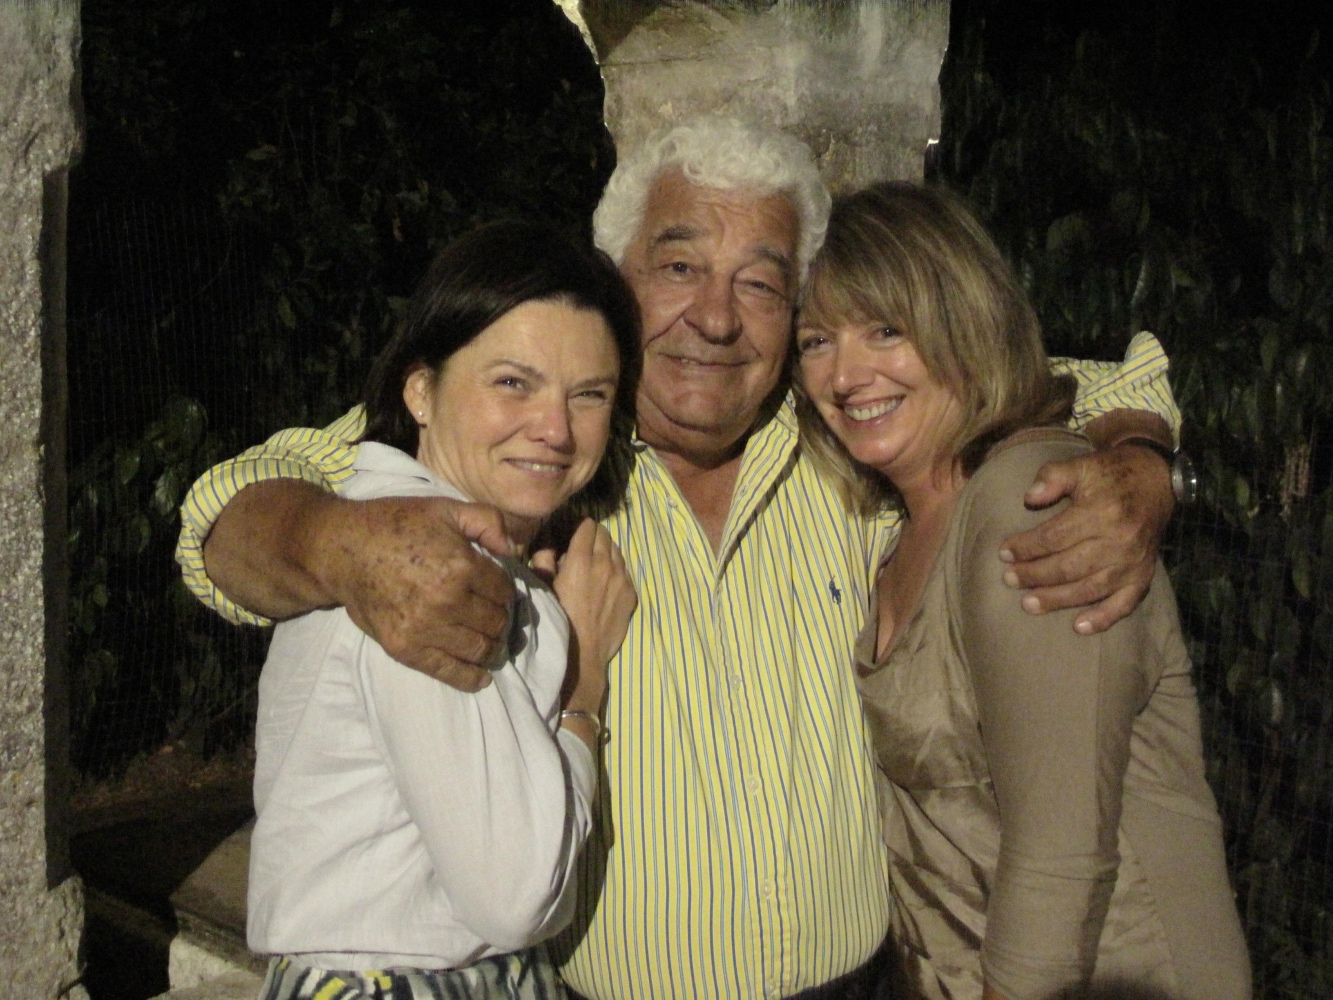 antonio carluccio, christine smallwood